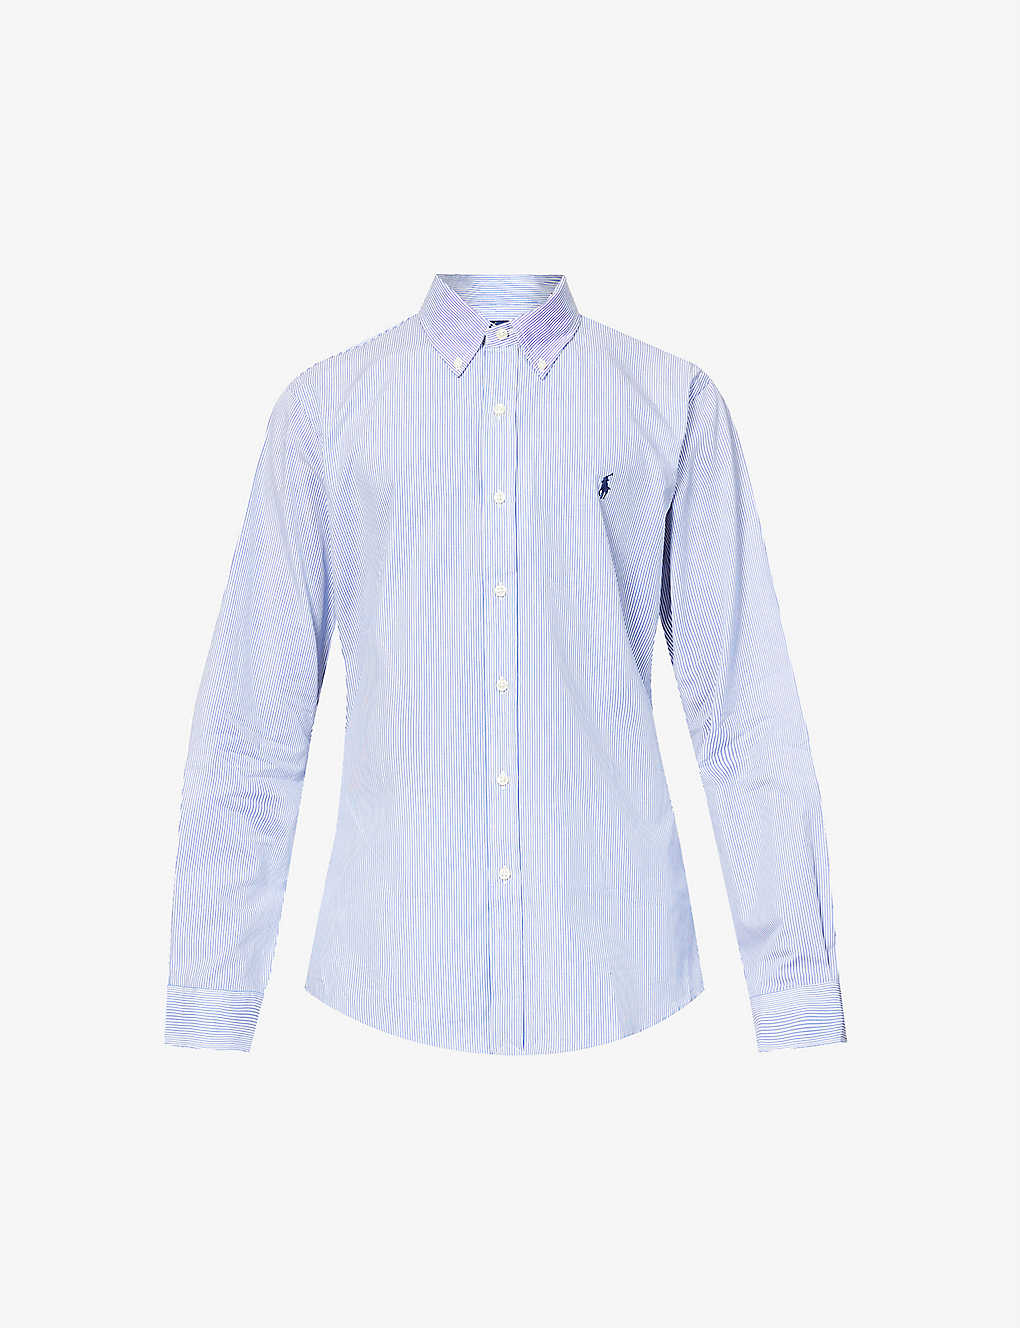 POLO RALPH LAUREN: Striped slim-fit cotton shirt